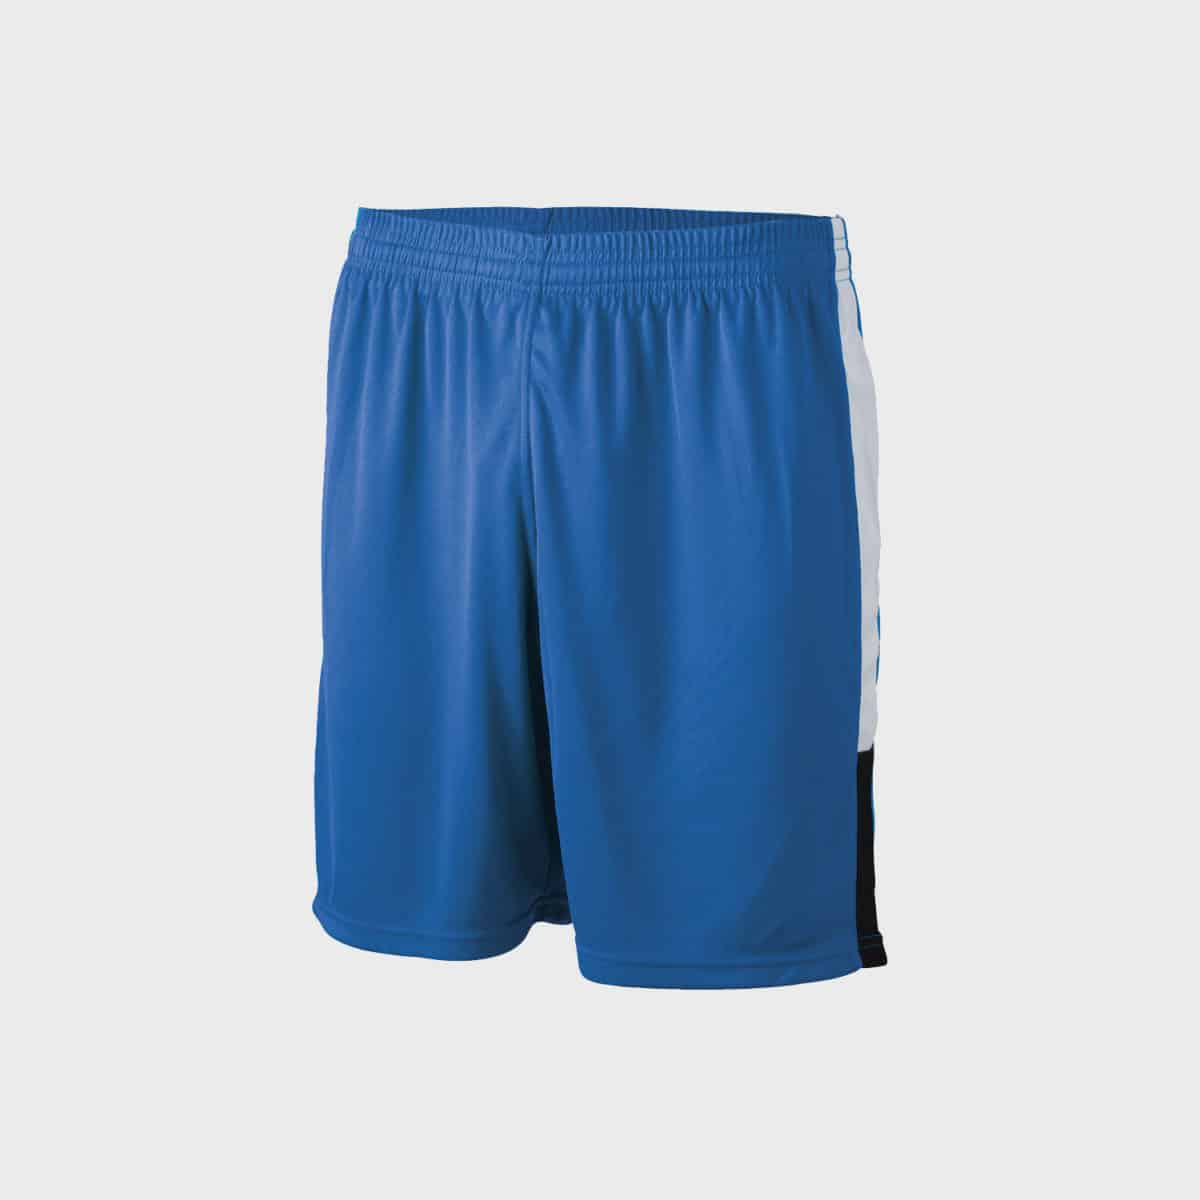 team-shorts-sport-unisex-kaufen-besticken_stickmanufaktur